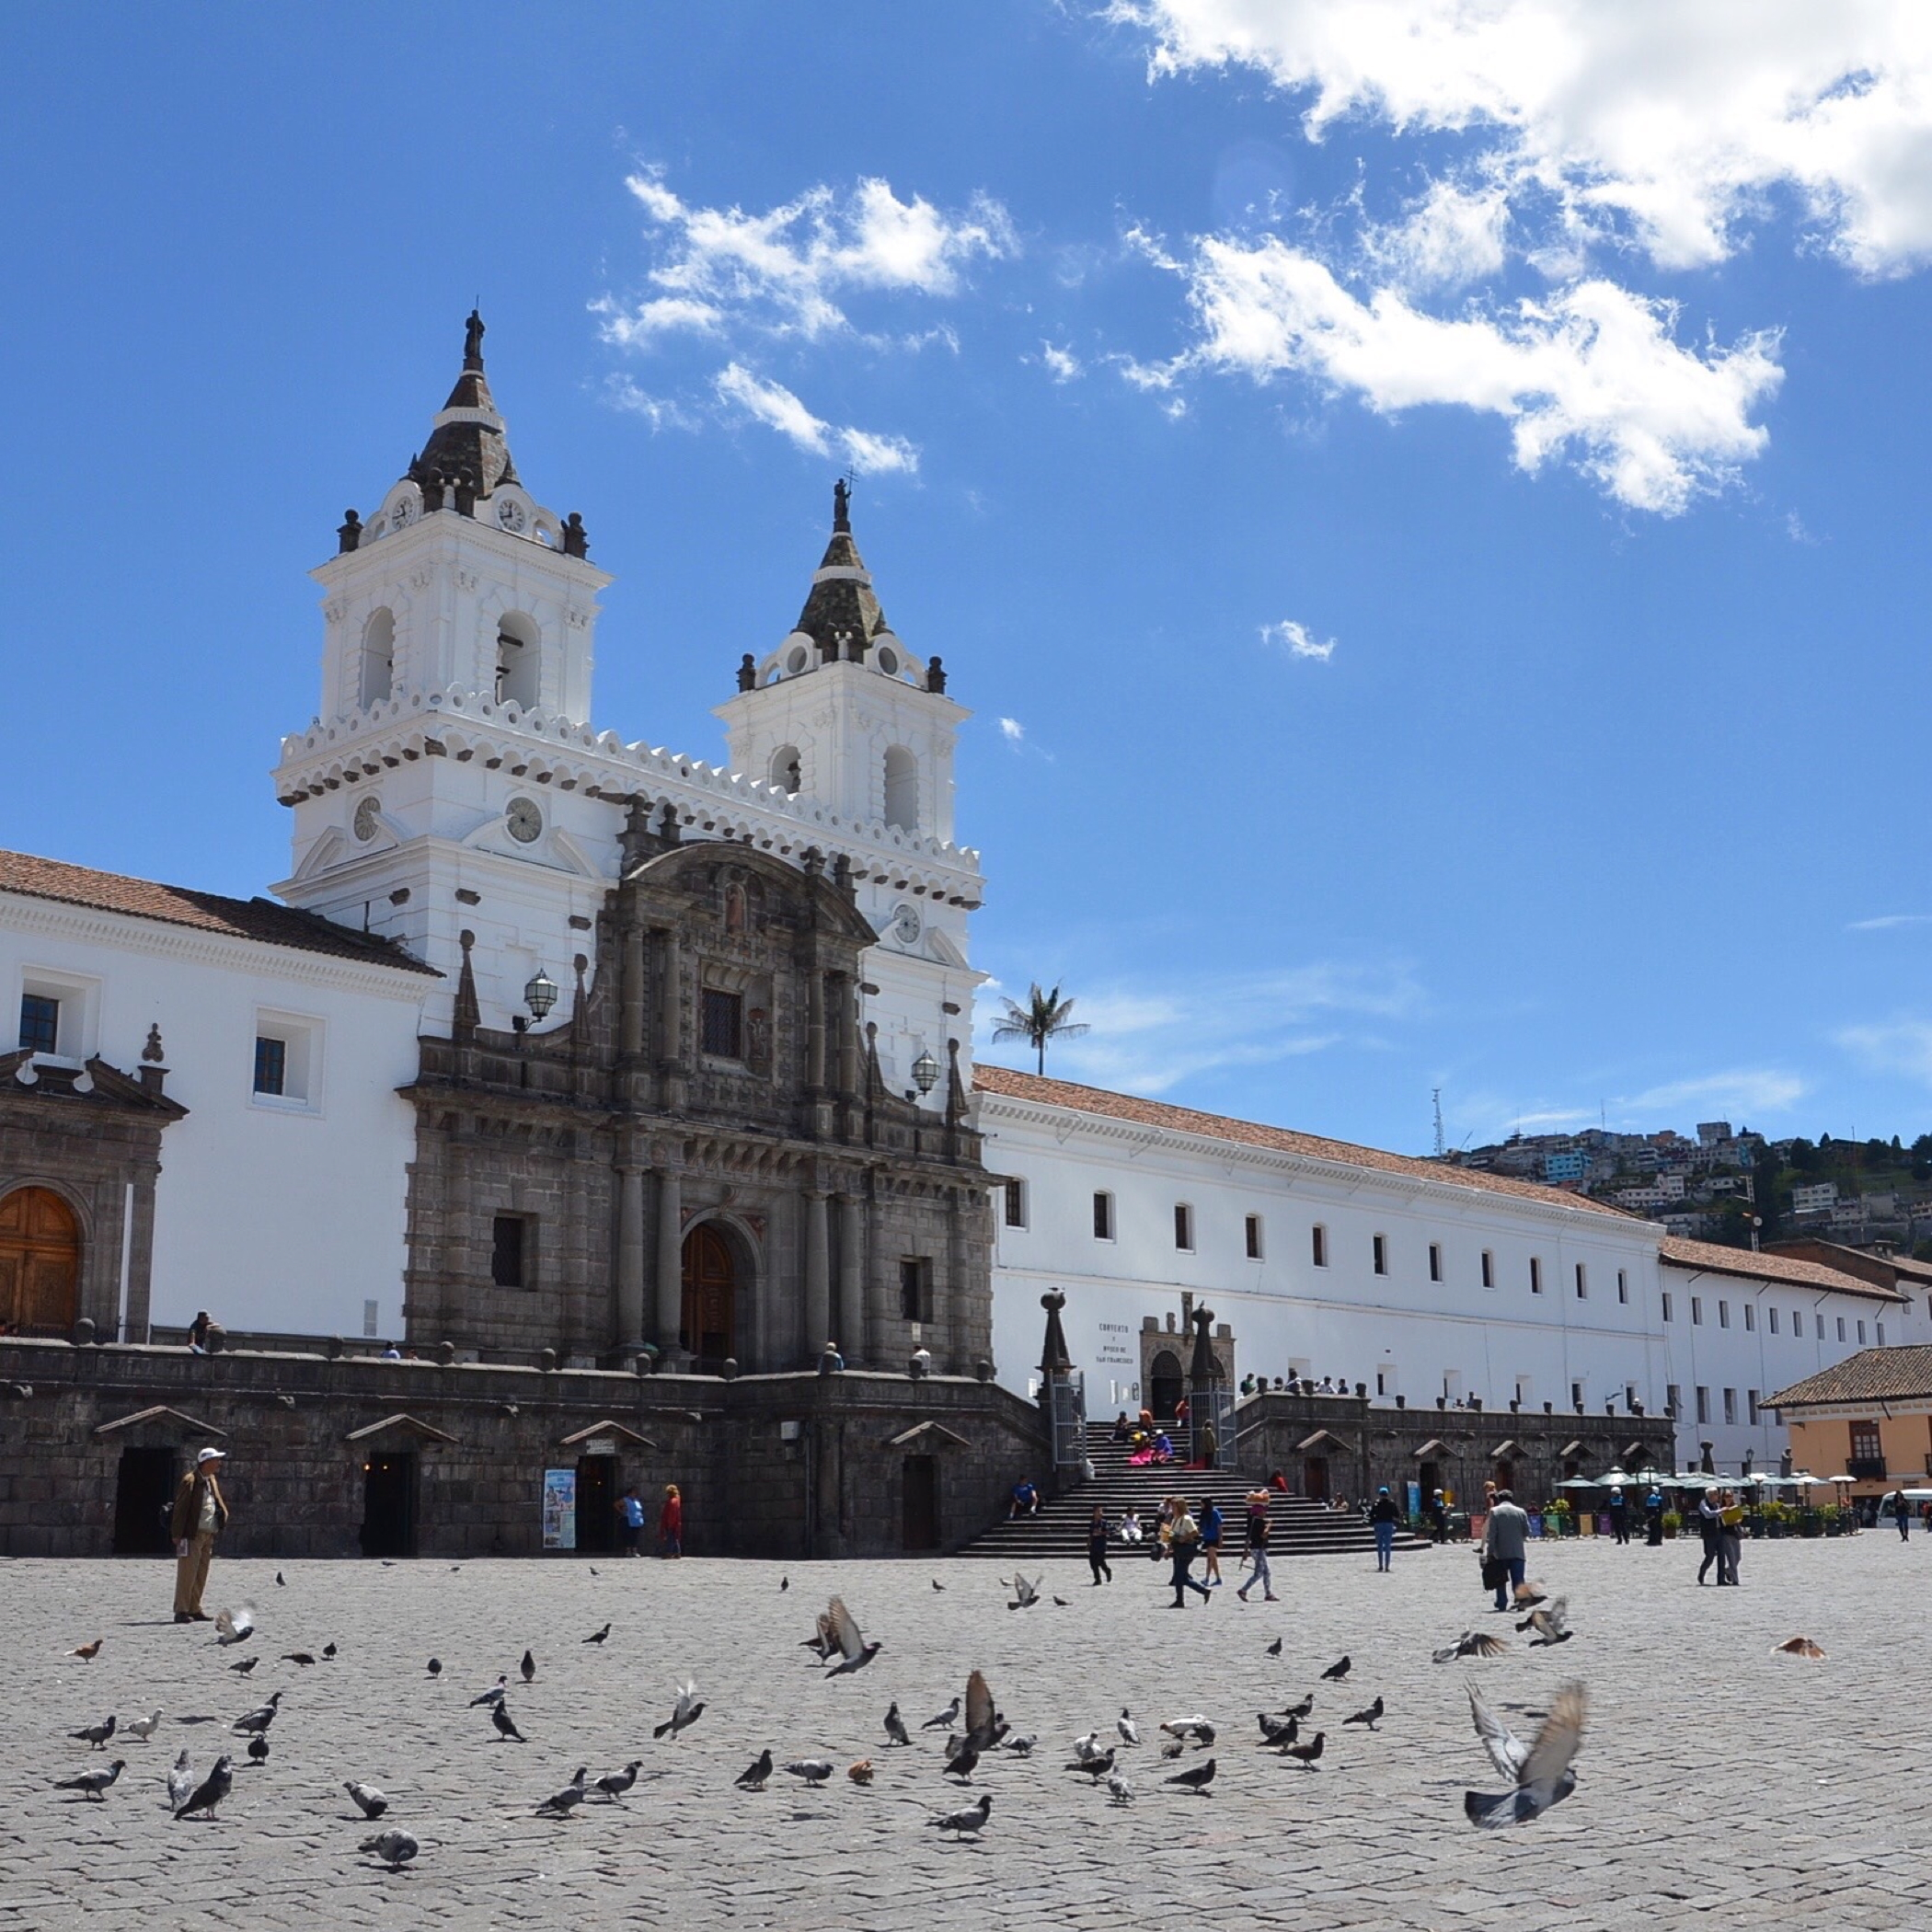 One favorite Instagram 2015 photo from Quito in Ecuador